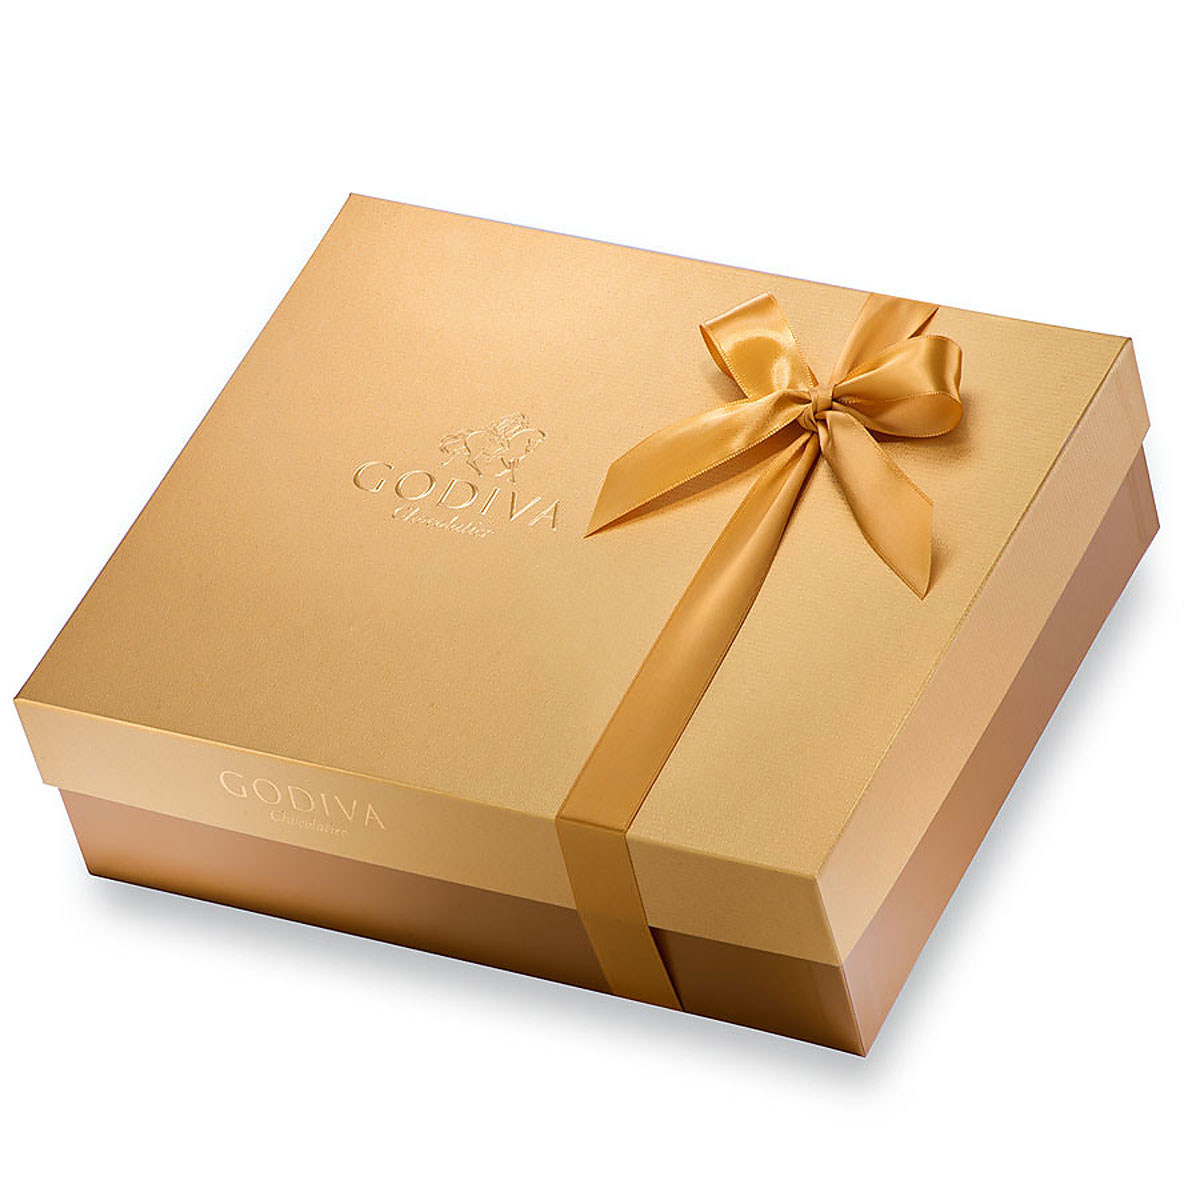 Godiva Chocolate Golden Classics Gift Box - Delivery in Europe ...